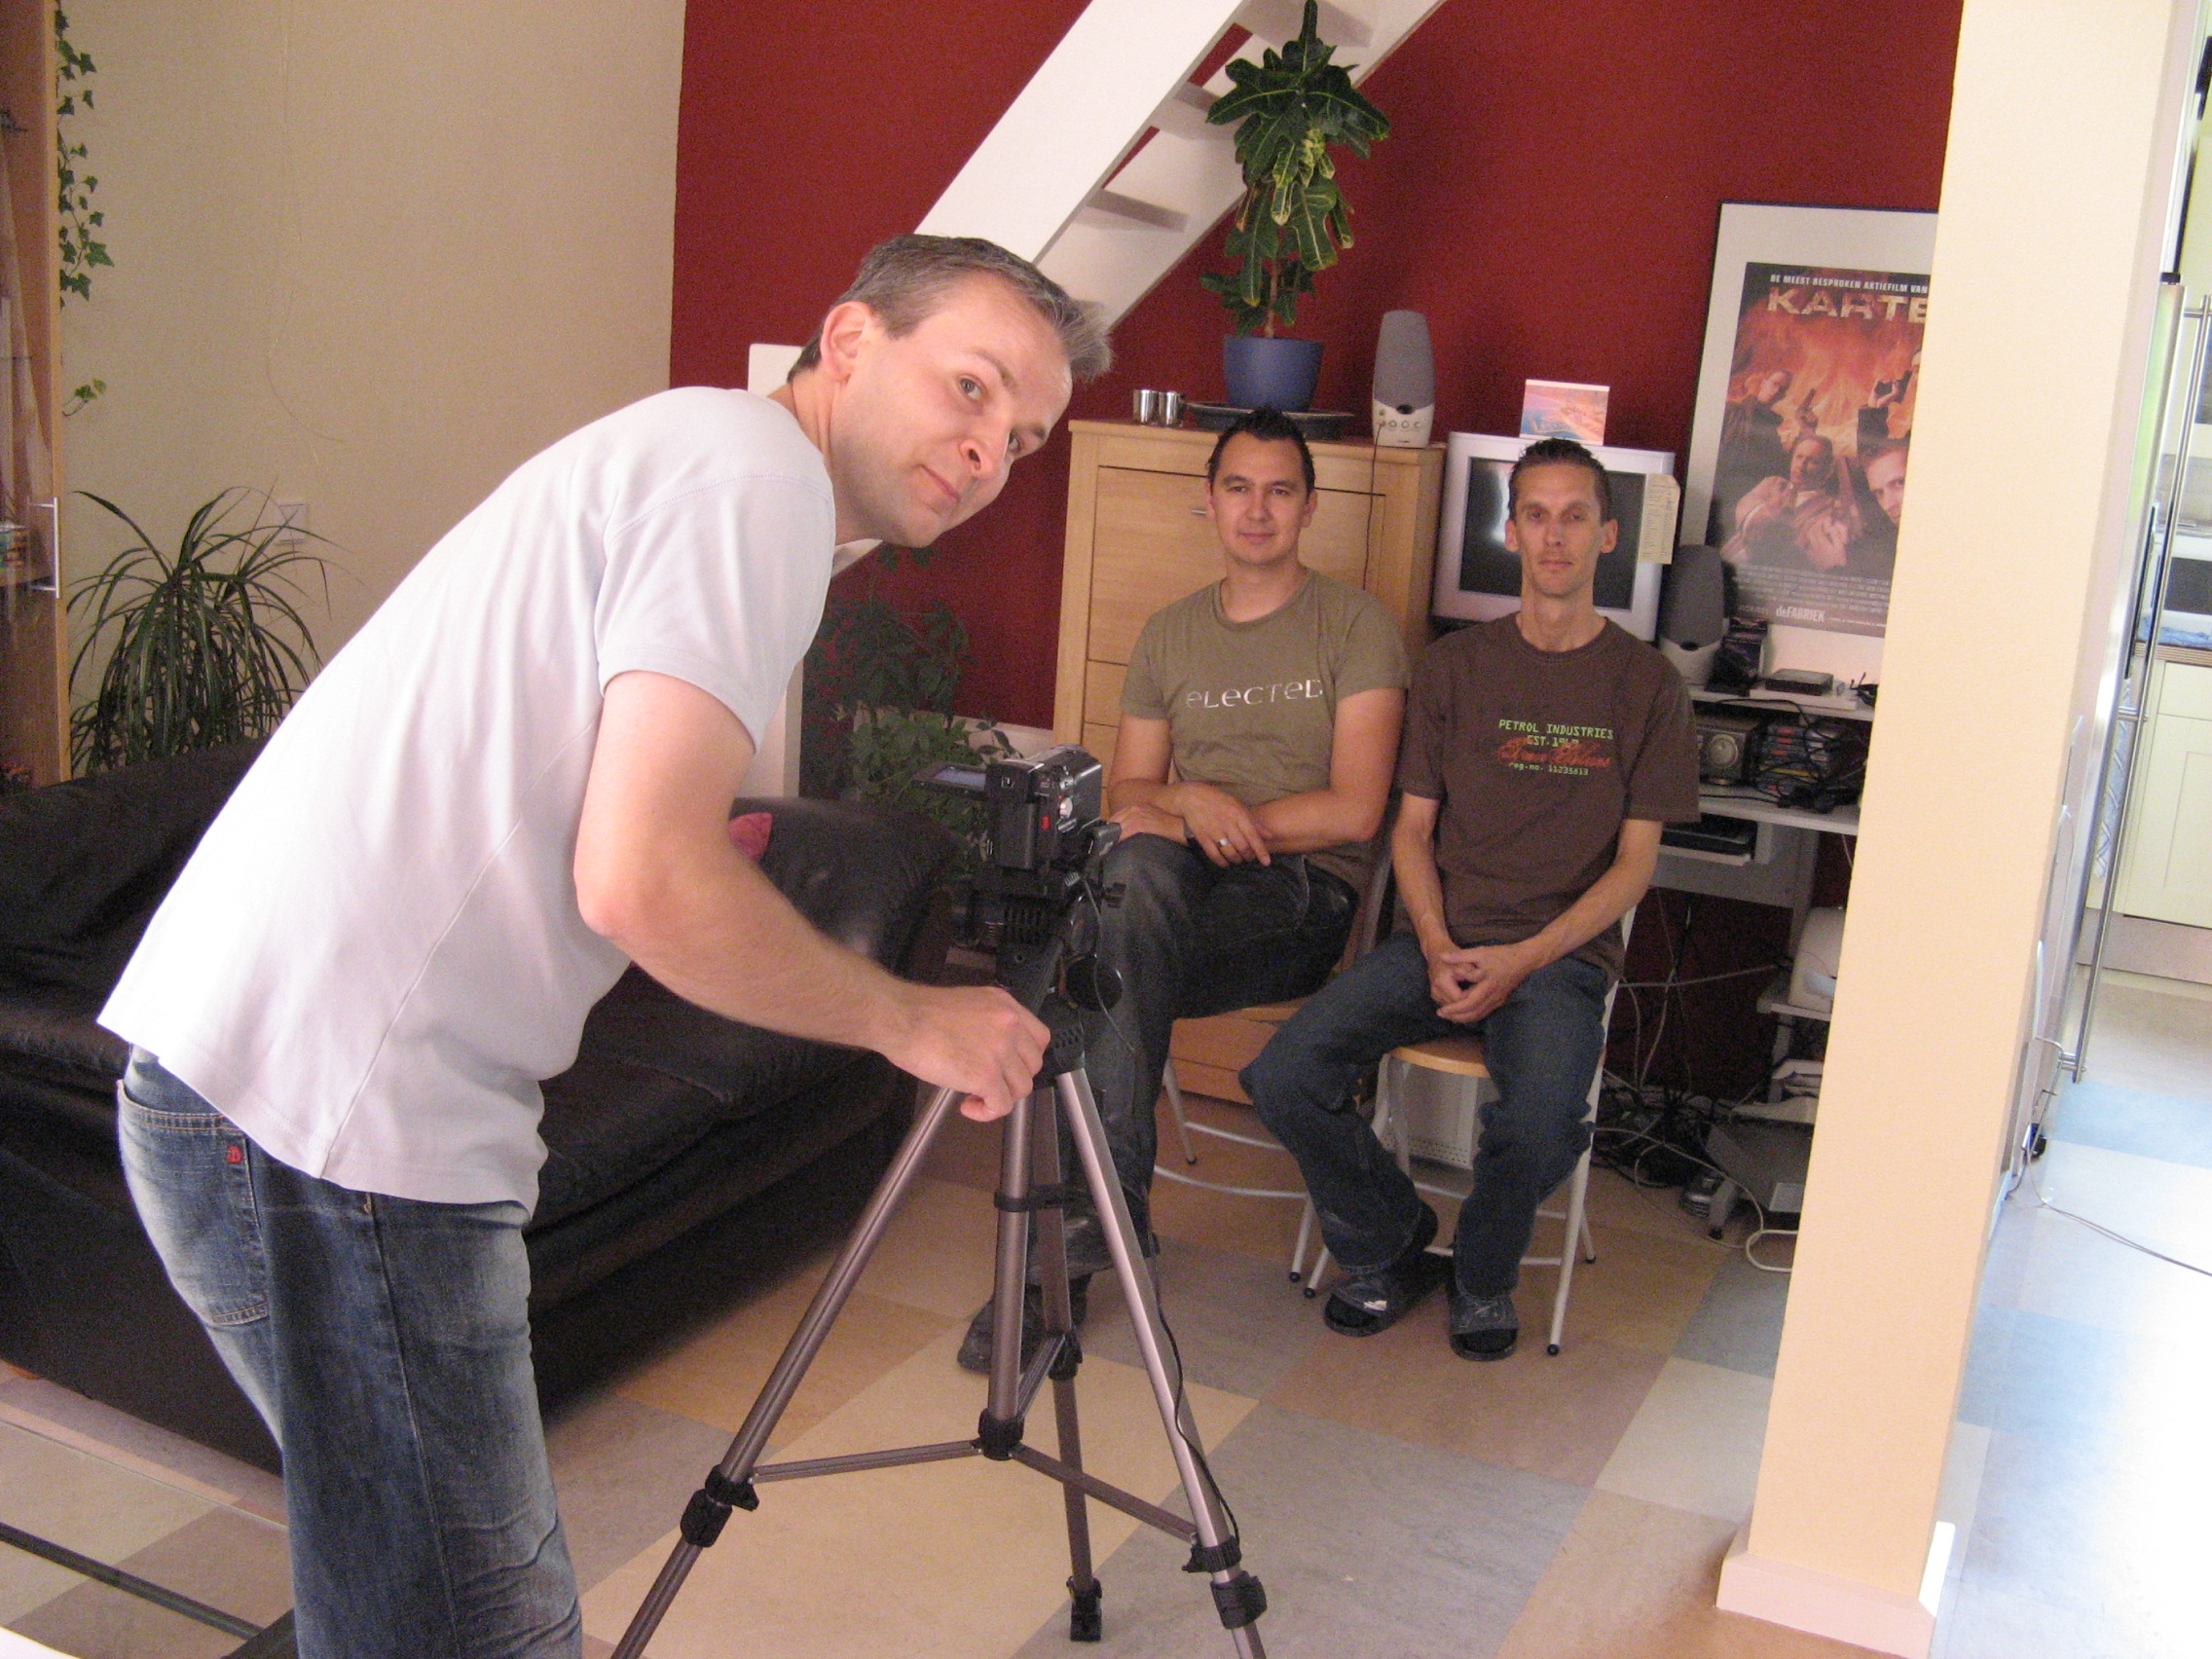 kartel-making-off-interview.jpg